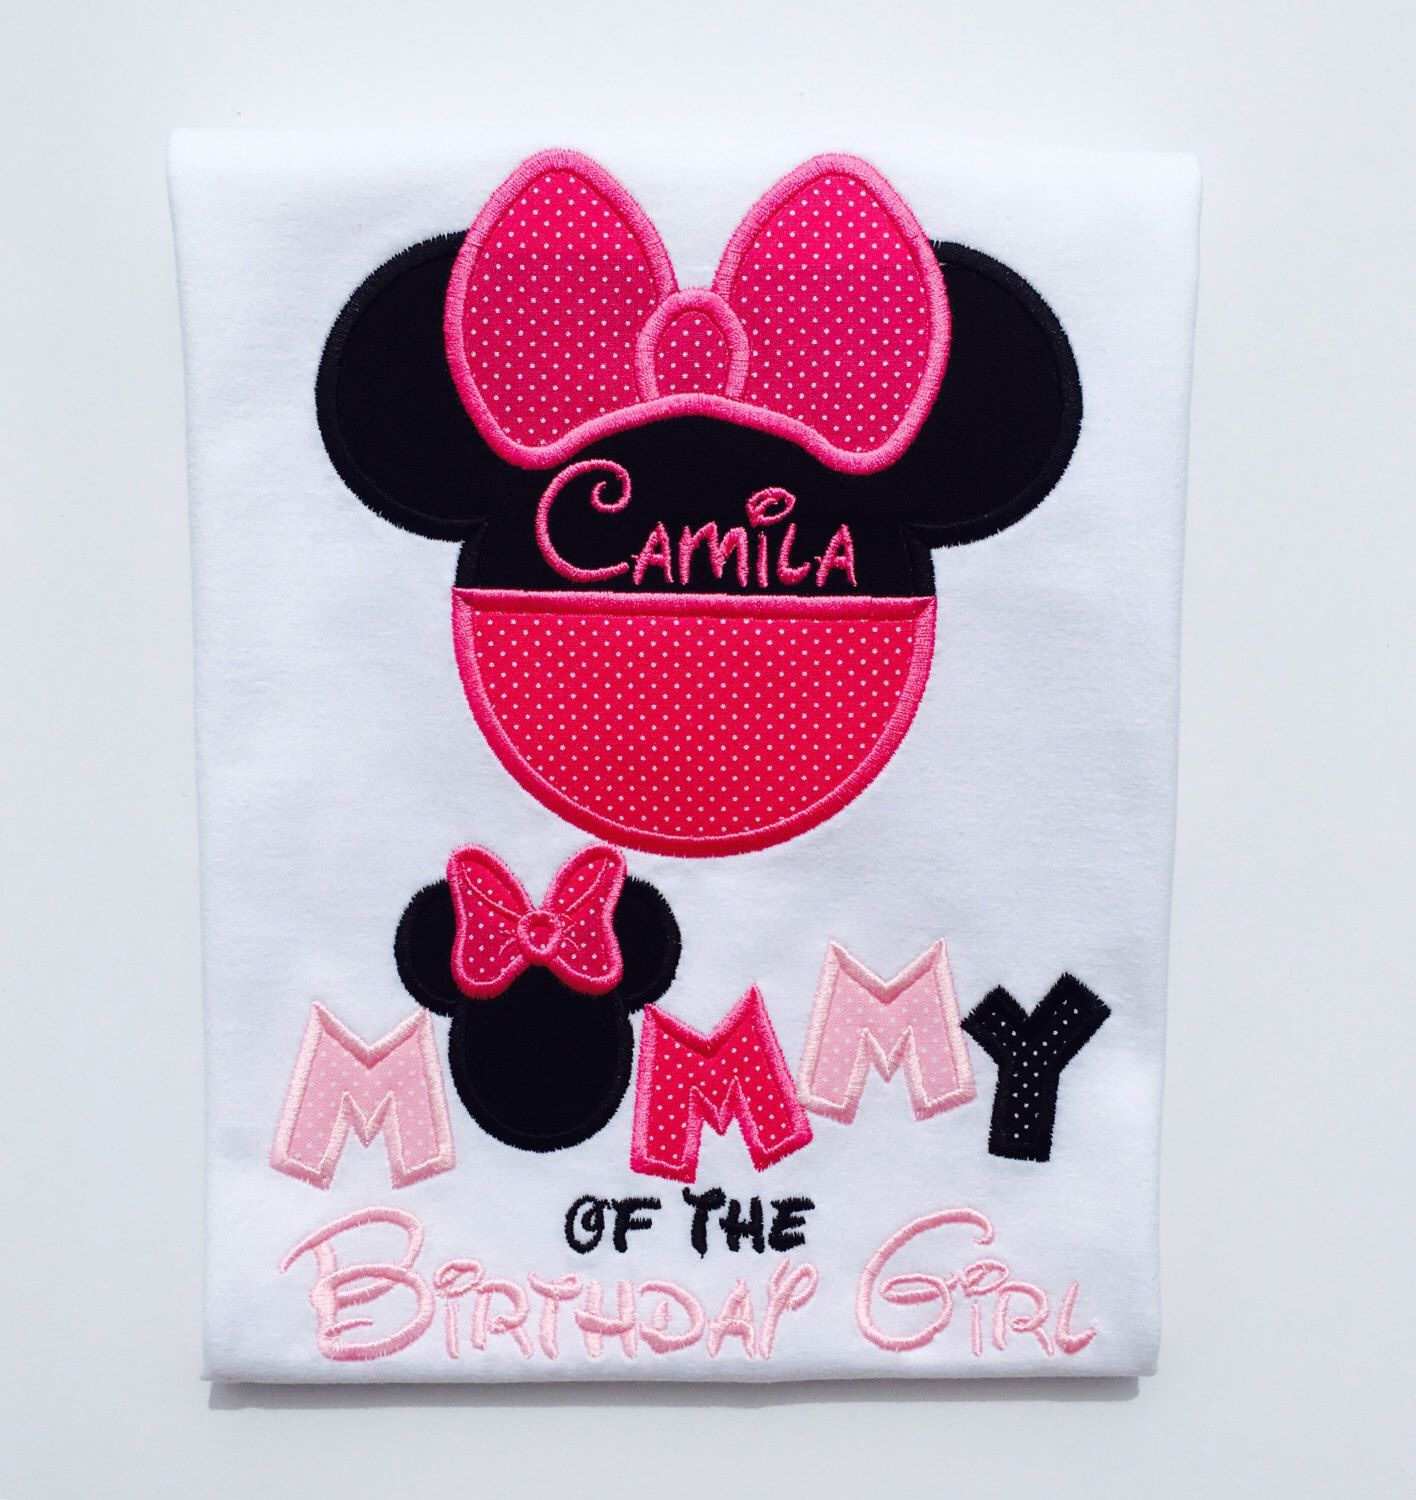 Design your own t-shirt hot pink - Classic Minnie Mommy Of The Birthday Girl Hot Pink Black Lt Pink With Dots Personalized Embroidered Adult T Shirt